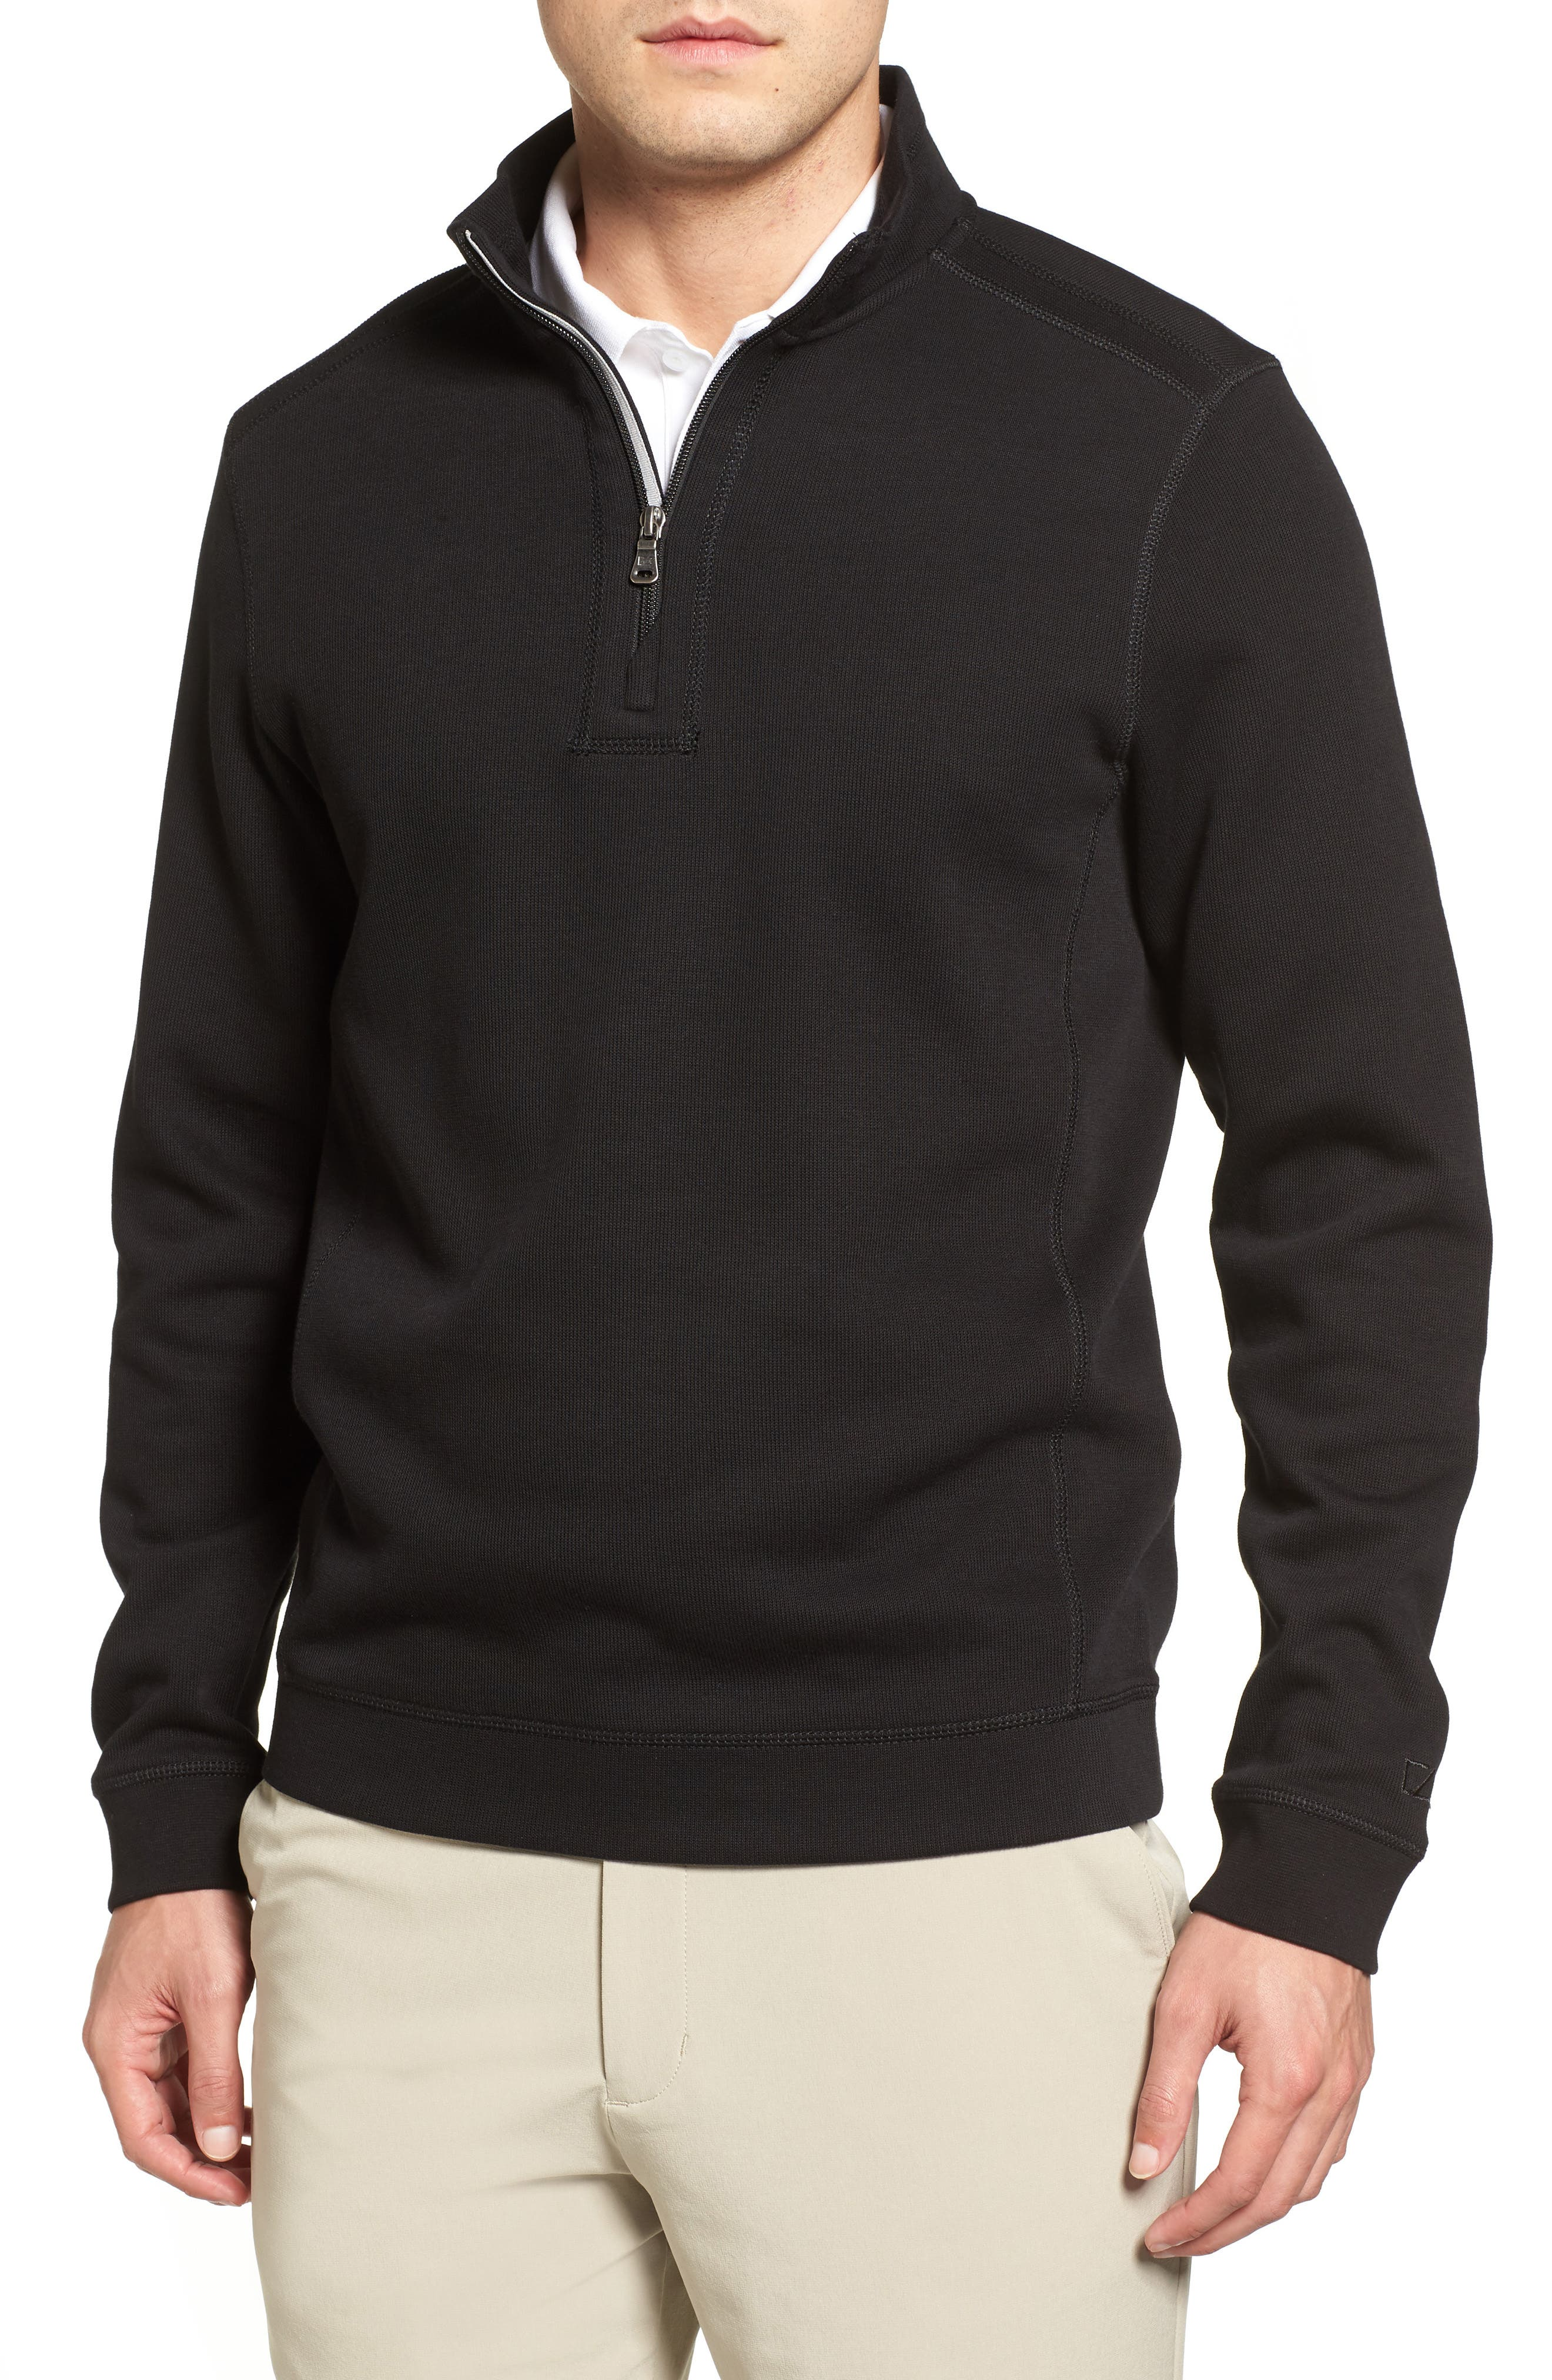 CUTTER & BUCK Bayview Quarter Zip Pullover, Main, color, BLACK